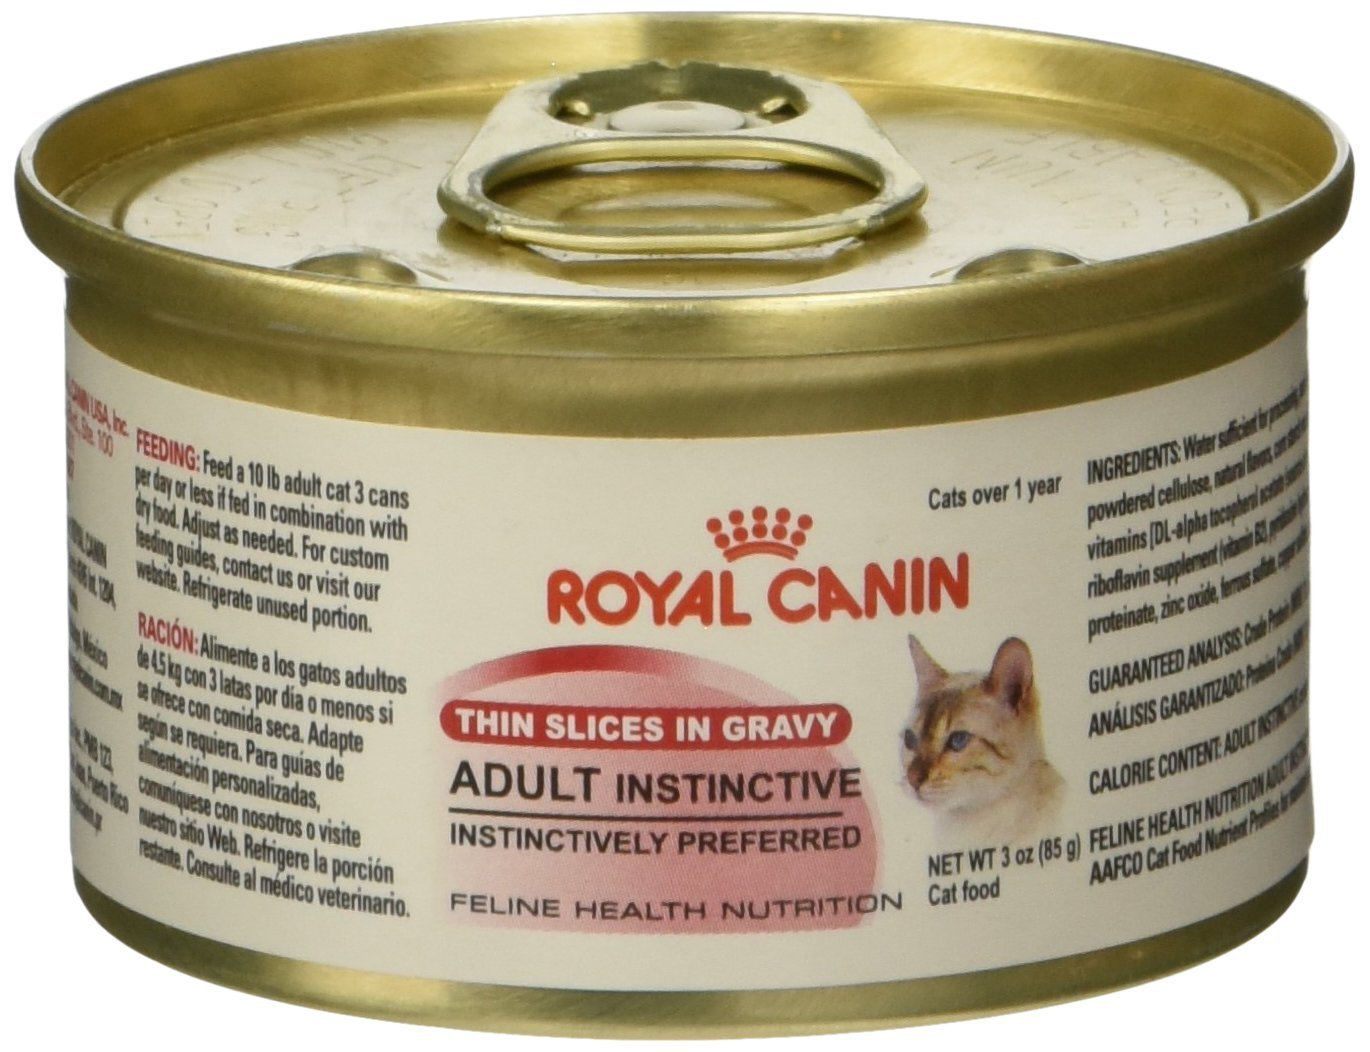 #pets Royal Canin Adult Instinctive is created to supply your grown-up cat with an a https://t.co/xF9bHkfCwo #cats https://t.co/8TSxtVpc0h